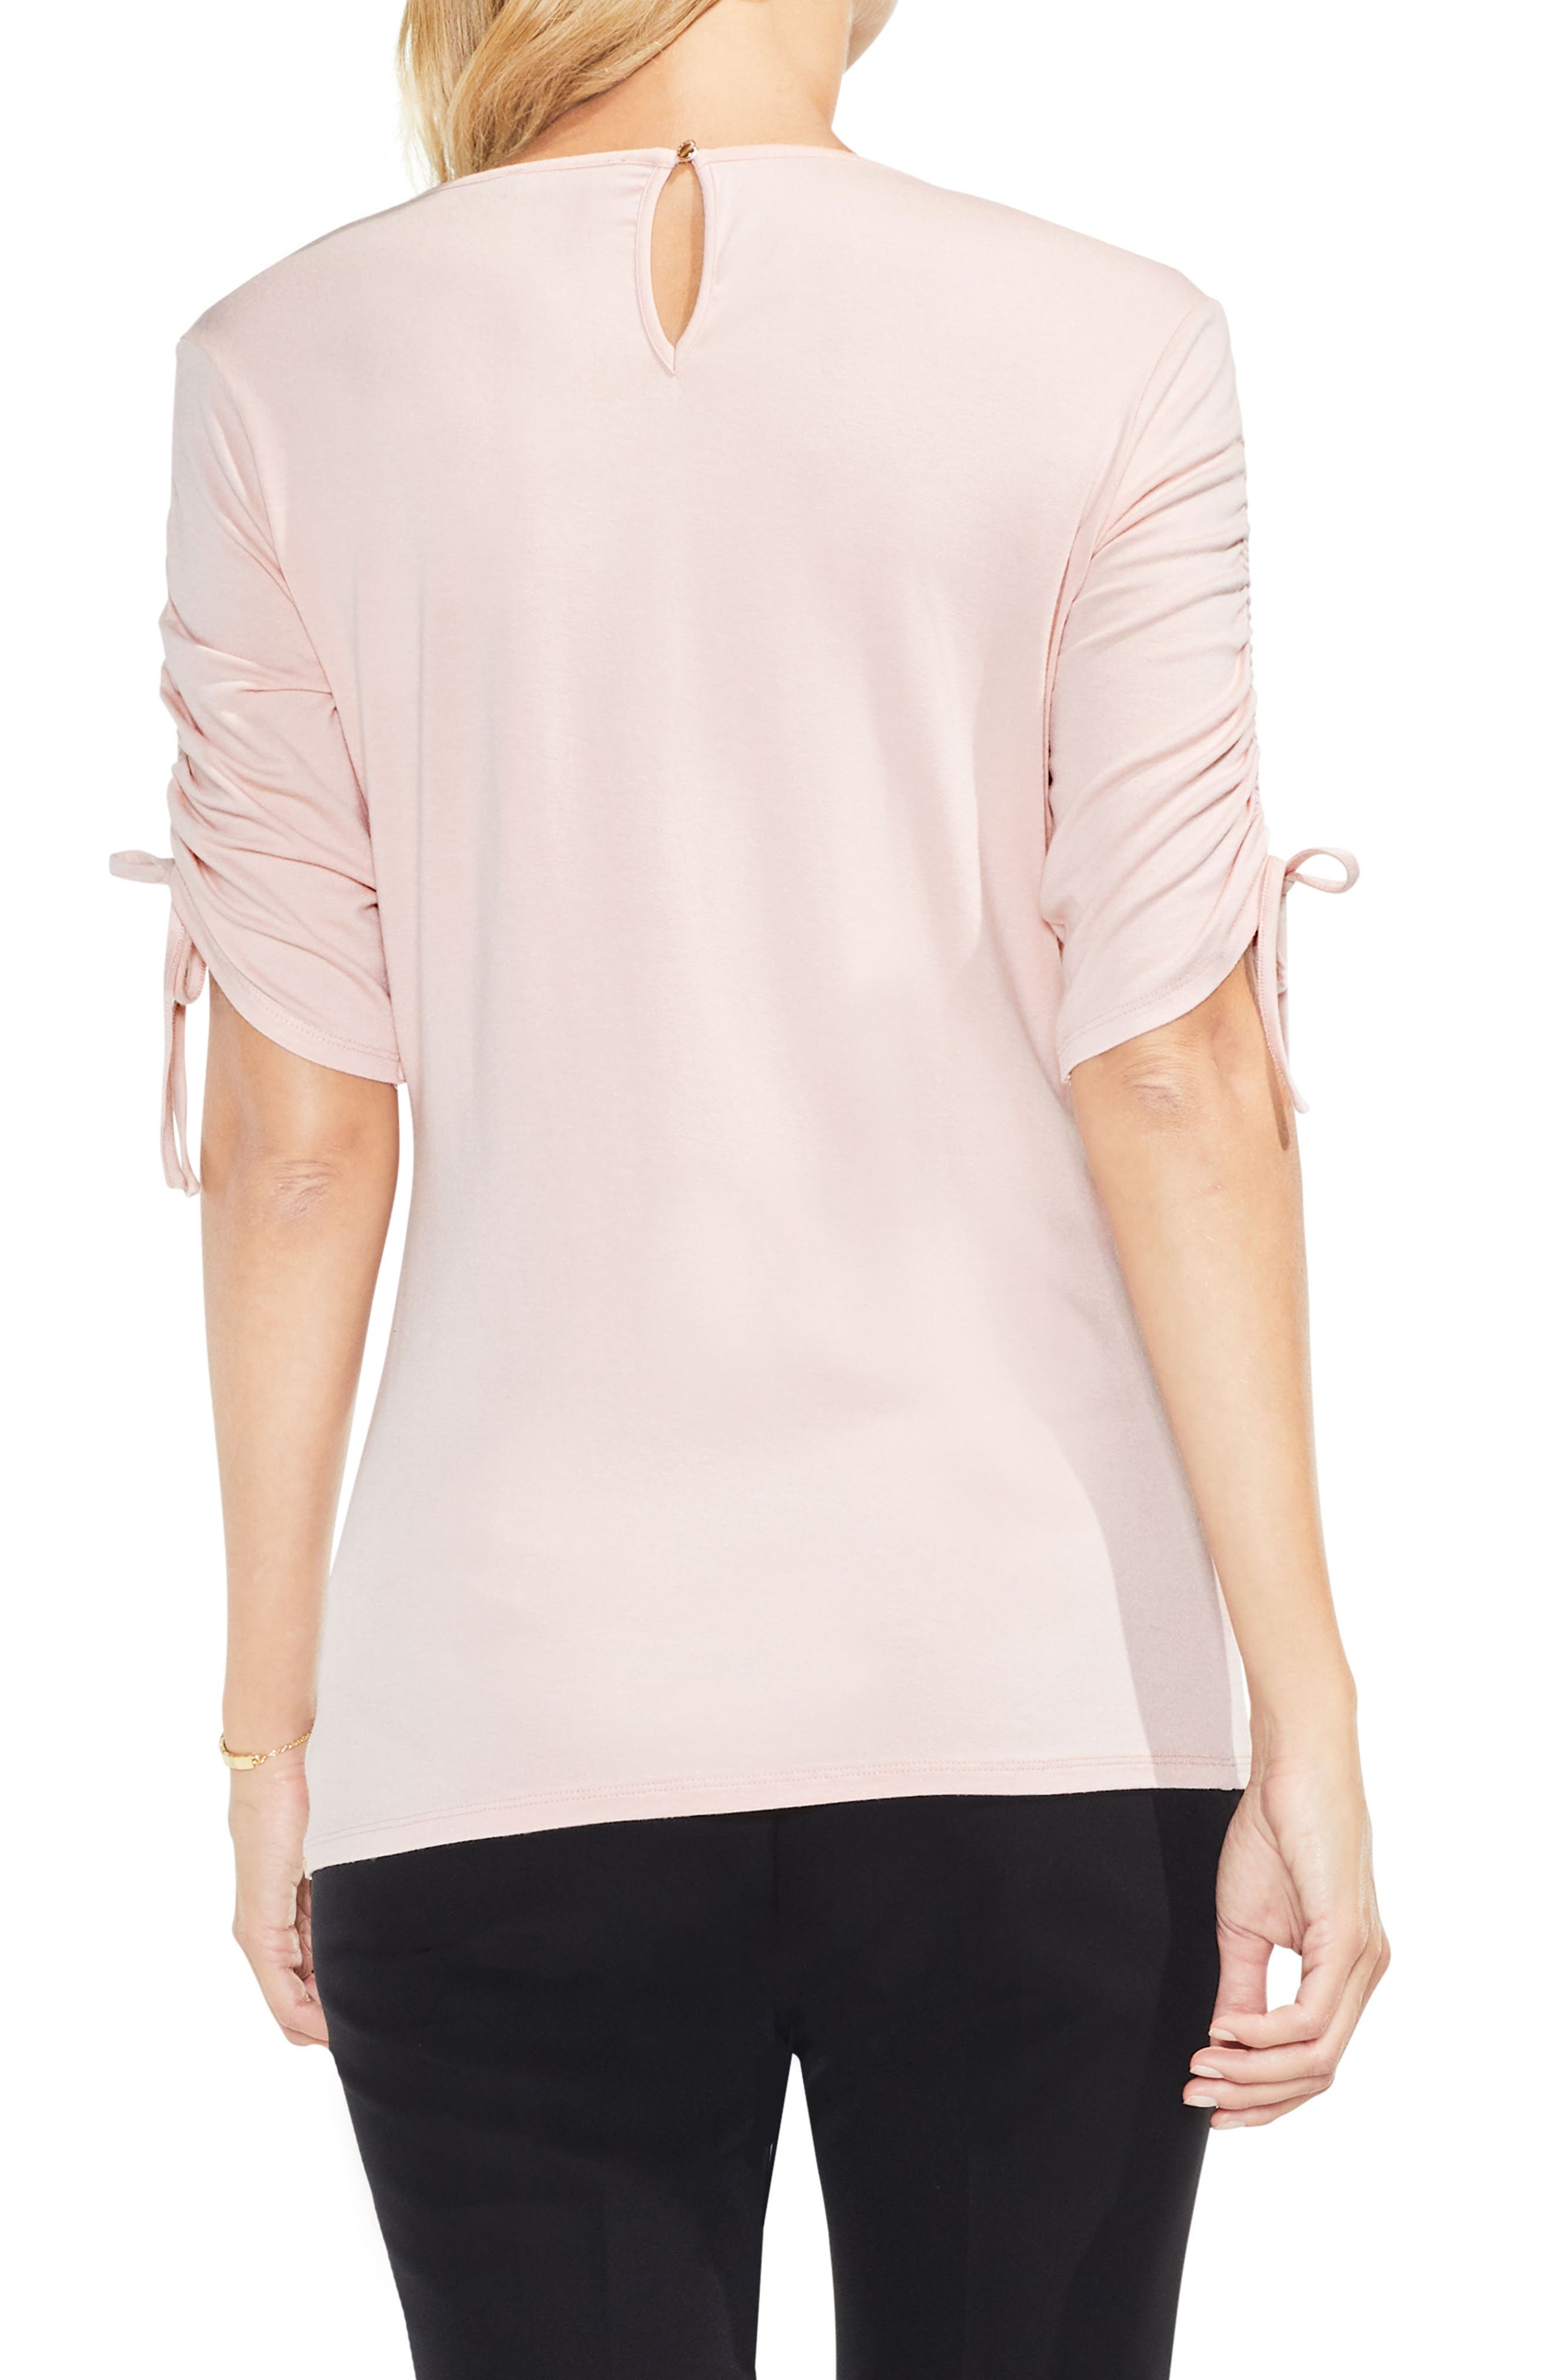 Alternate Image 2  - Vince Camuto Ruched Elbow Sleeve Top (Regular & Petite)